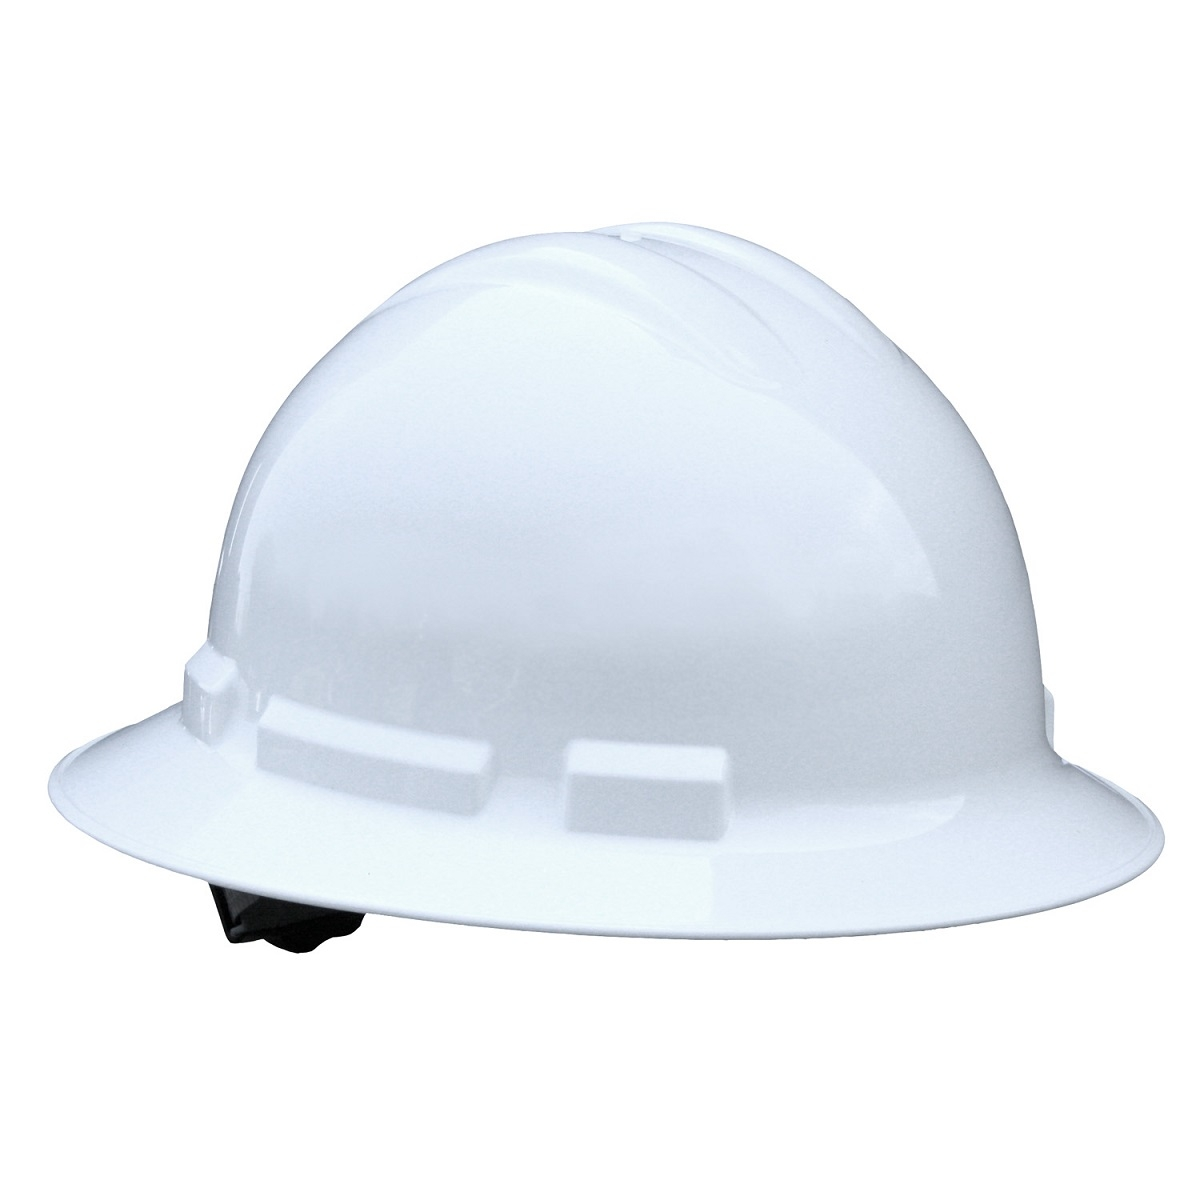 radians qhr6 quartz full brim hard hat 6 point ratchet suspension white. Black Bedroom Furniture Sets. Home Design Ideas